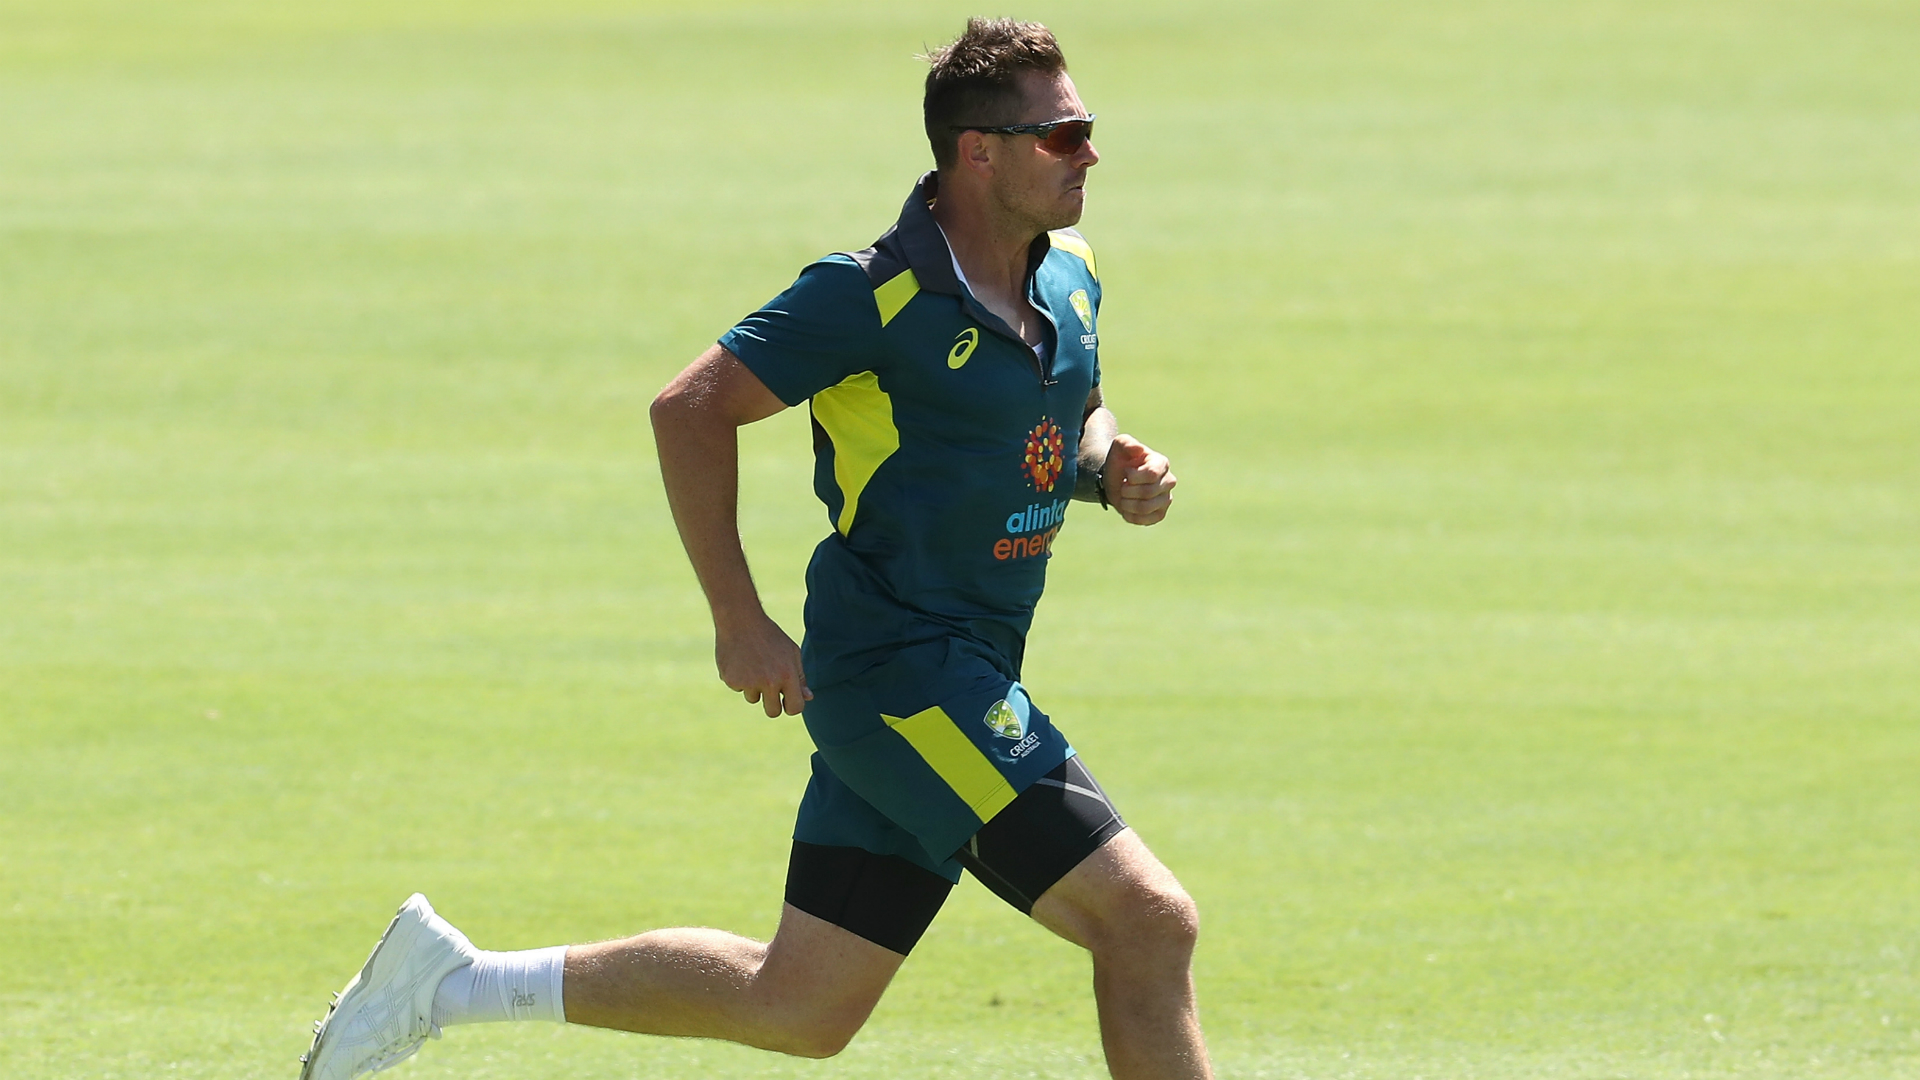 Pattinson set to face Black Caps in Boxing Day Test – Langer